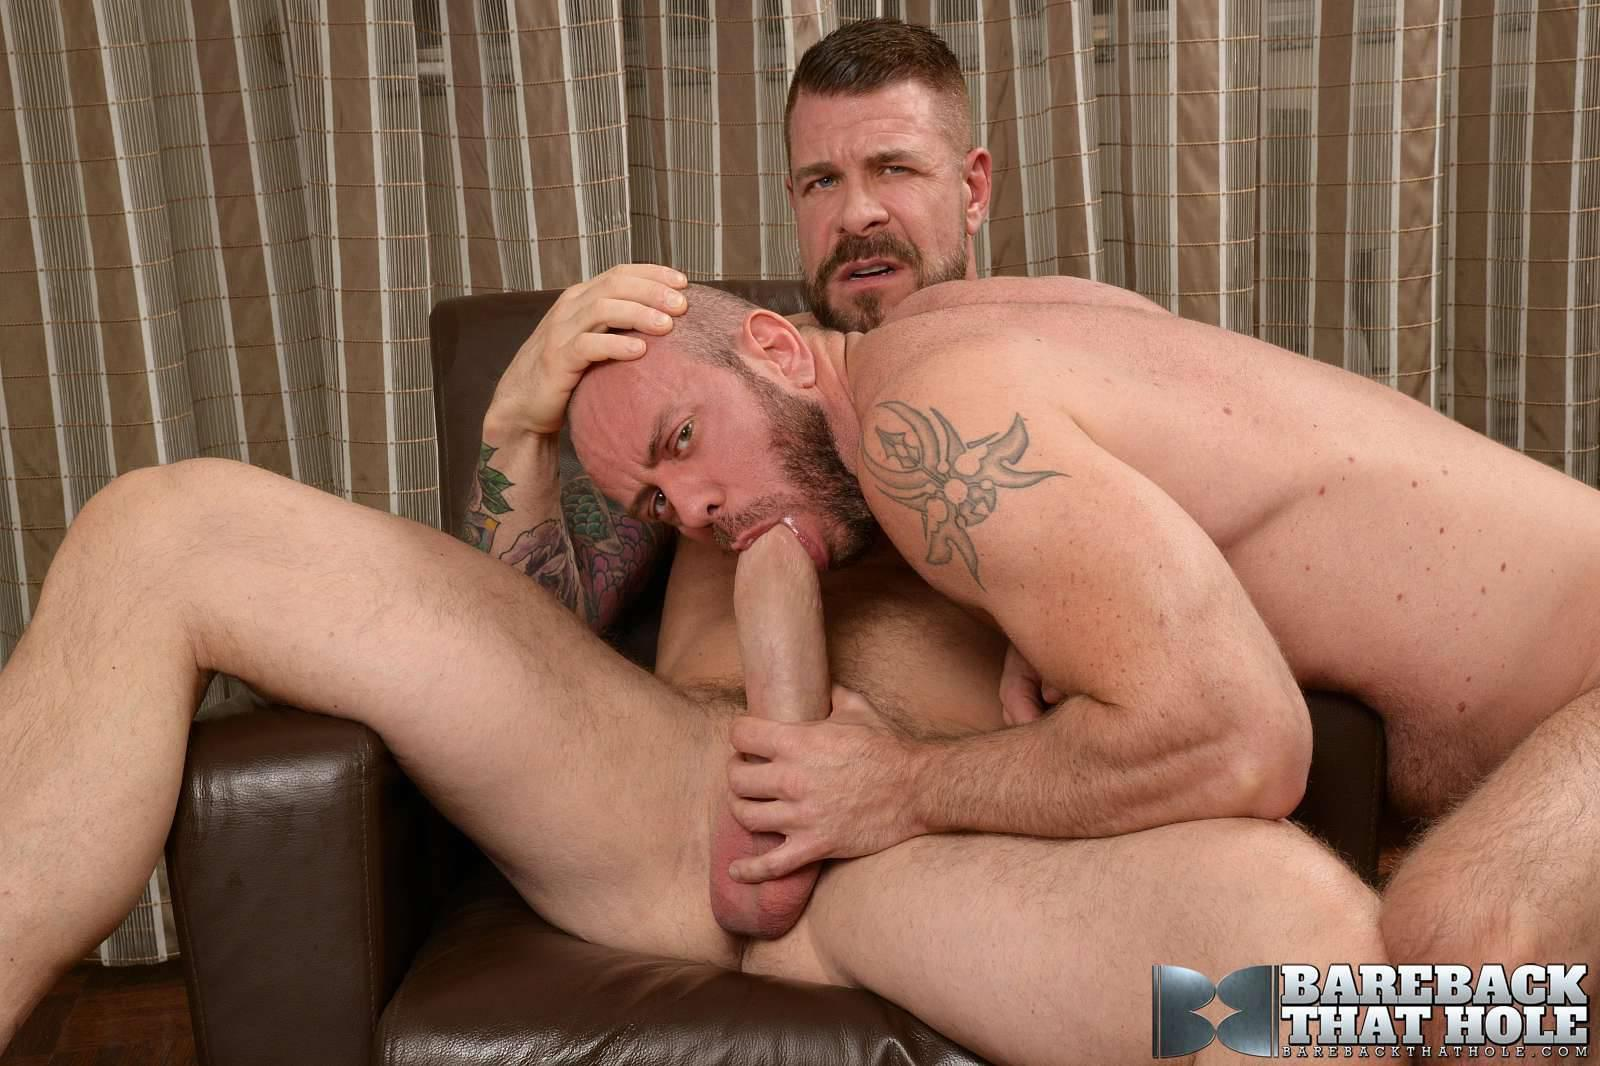 Bareback-That-Hole-Rocco-Steele-and-Matt-Stevens-Hairy-Muscle-Daddy-Bareback-Amateur-Gay-Porn-20 Hairy Muscle Daddy Rocco Steele Breeding Matt Stevens